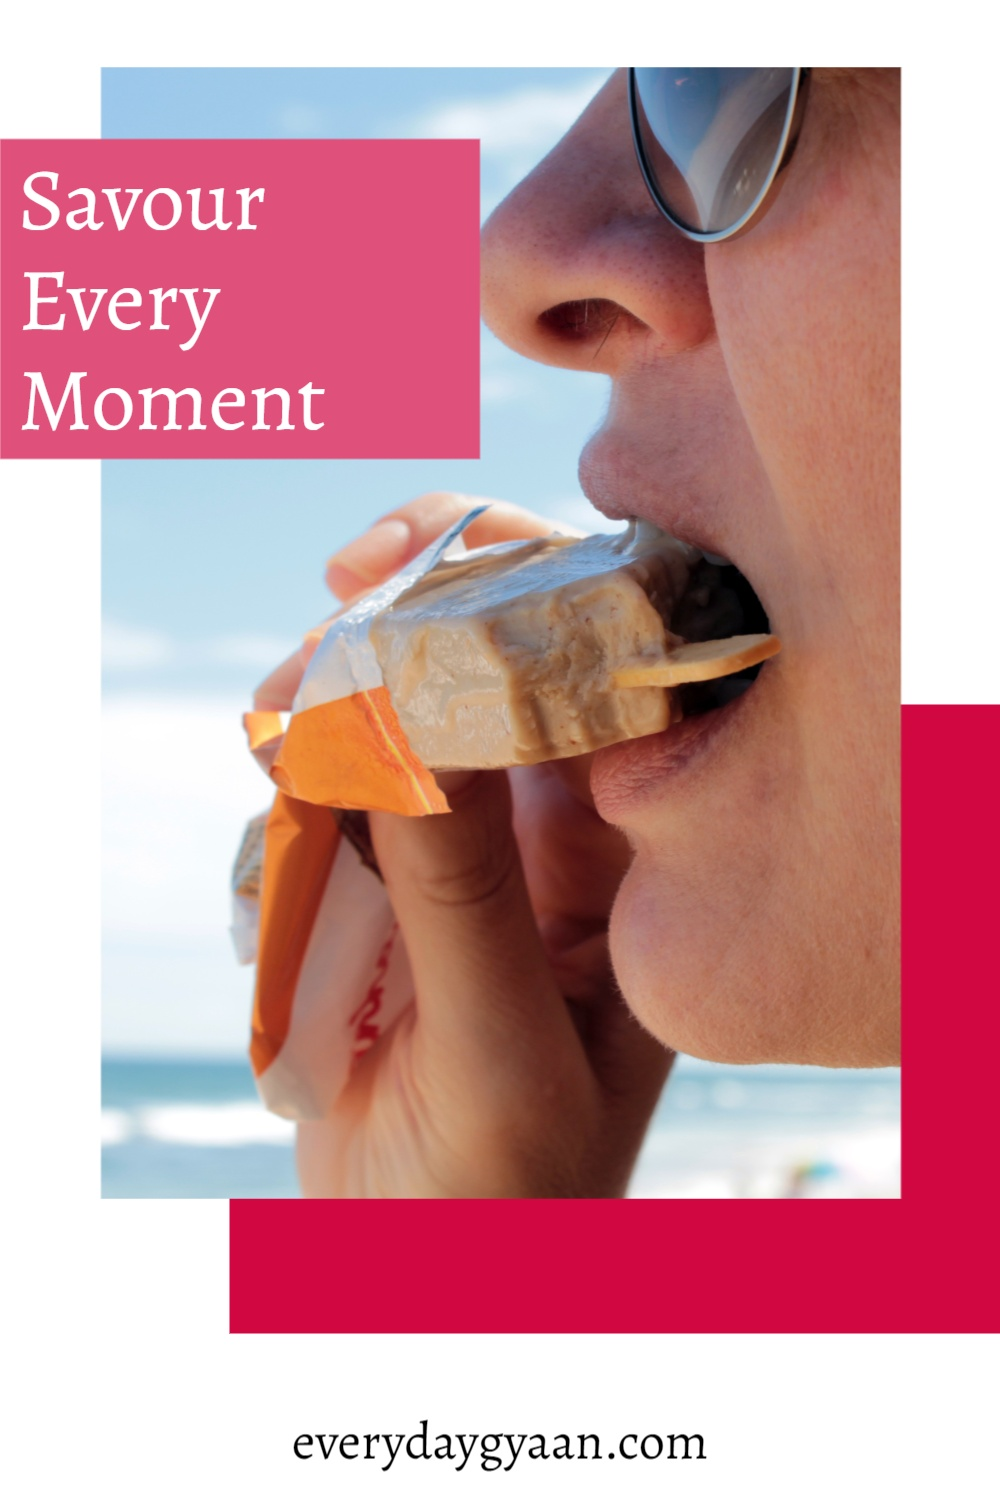 Savour Every Moment